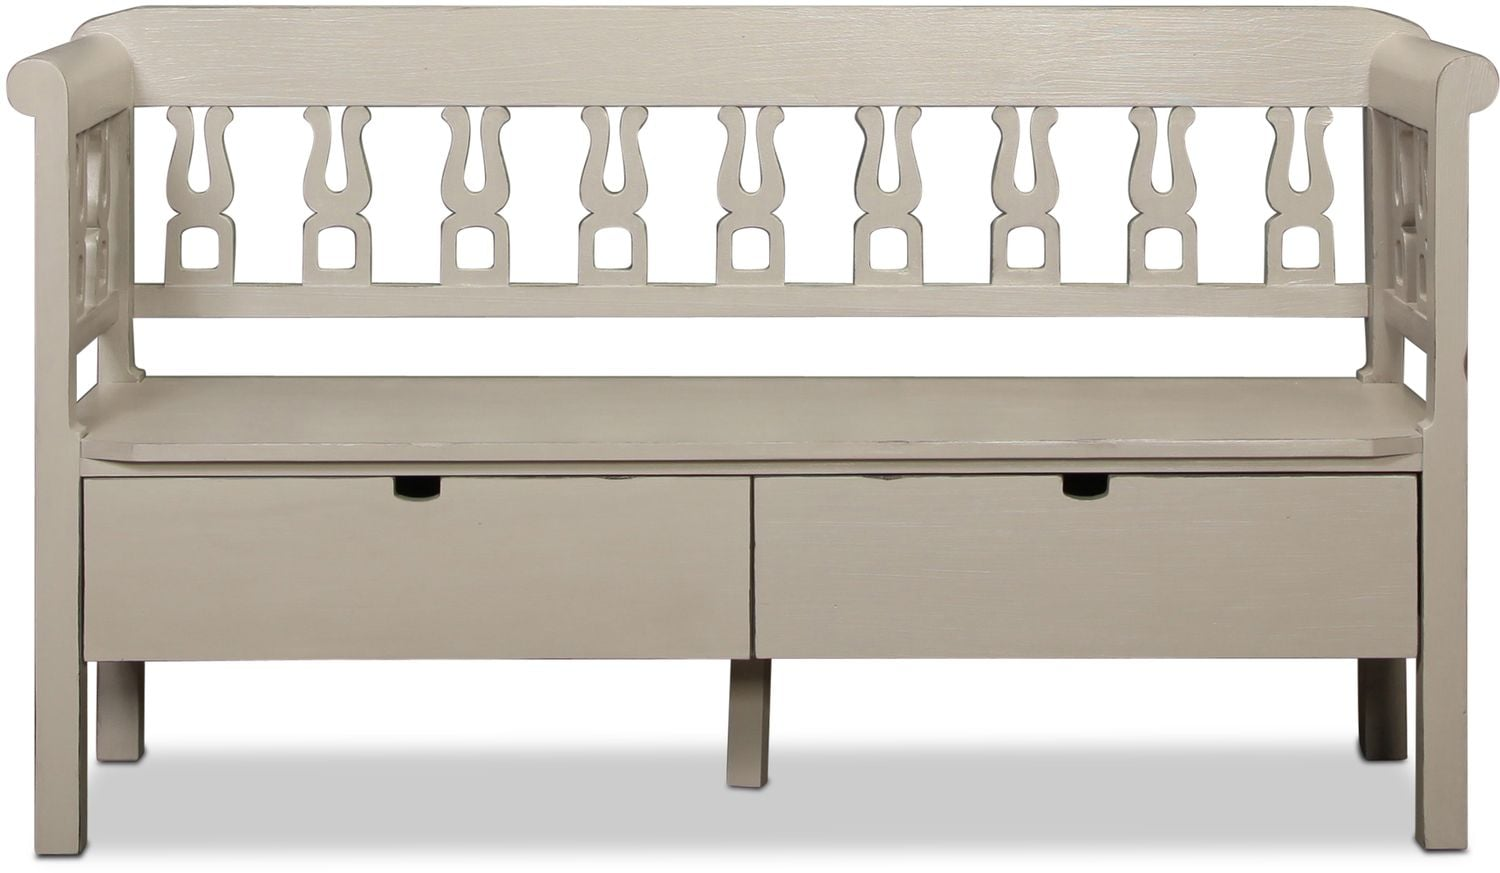 Magnolia Home Elements Storage Bench